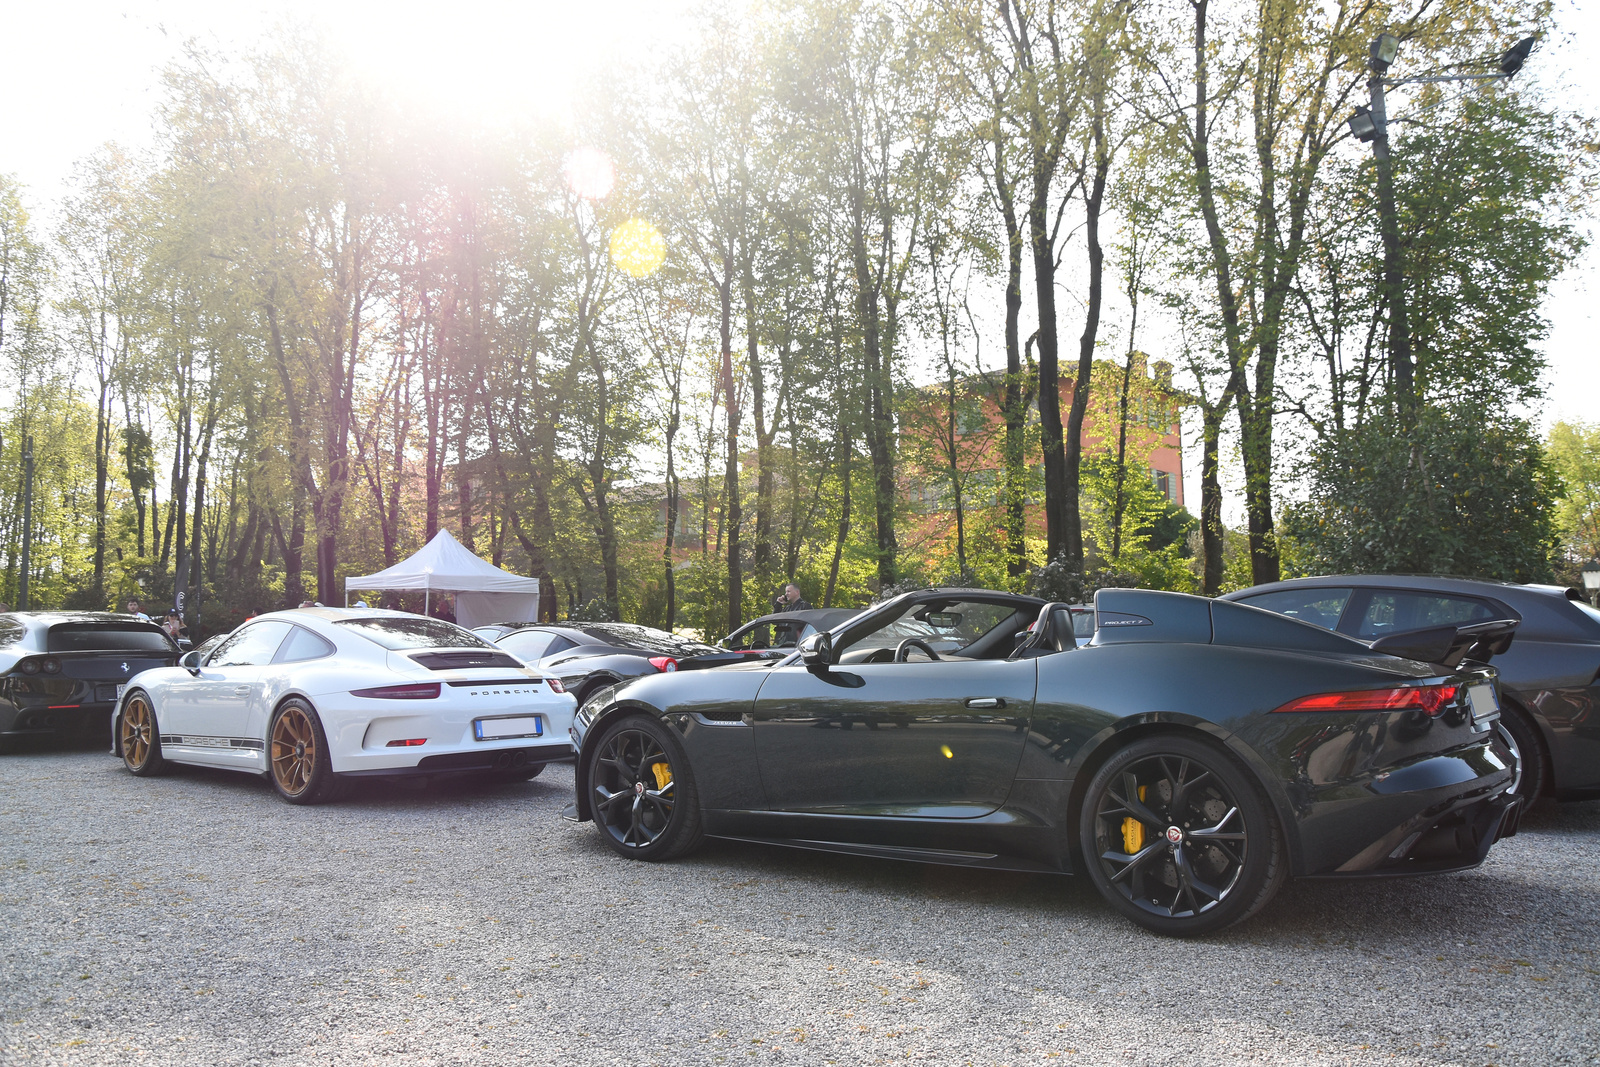 Porsche 911 R - Jaguar F-TYPE Project 7